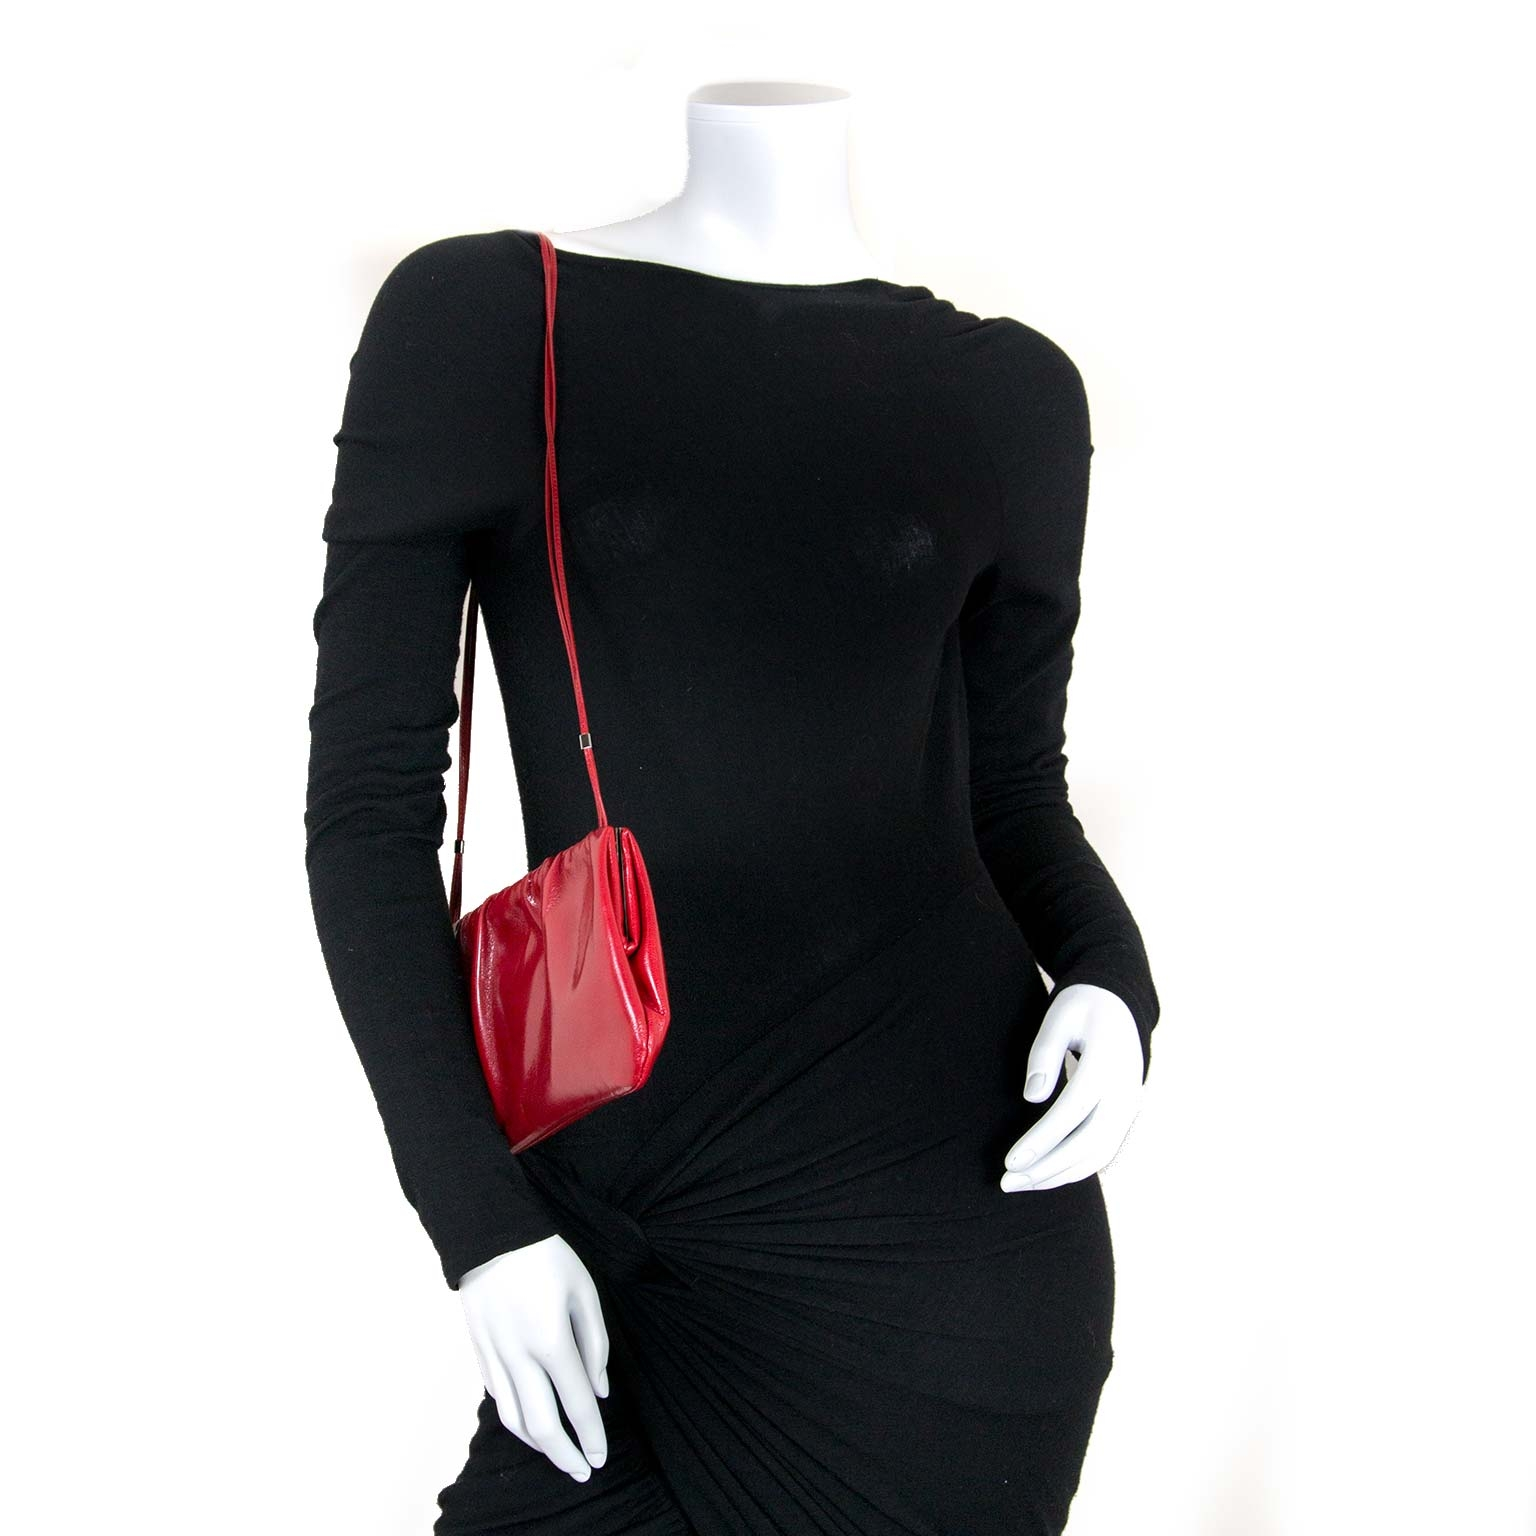 sergio rossi red evening bag now for sale at labellov vintage fashion webshop belgium